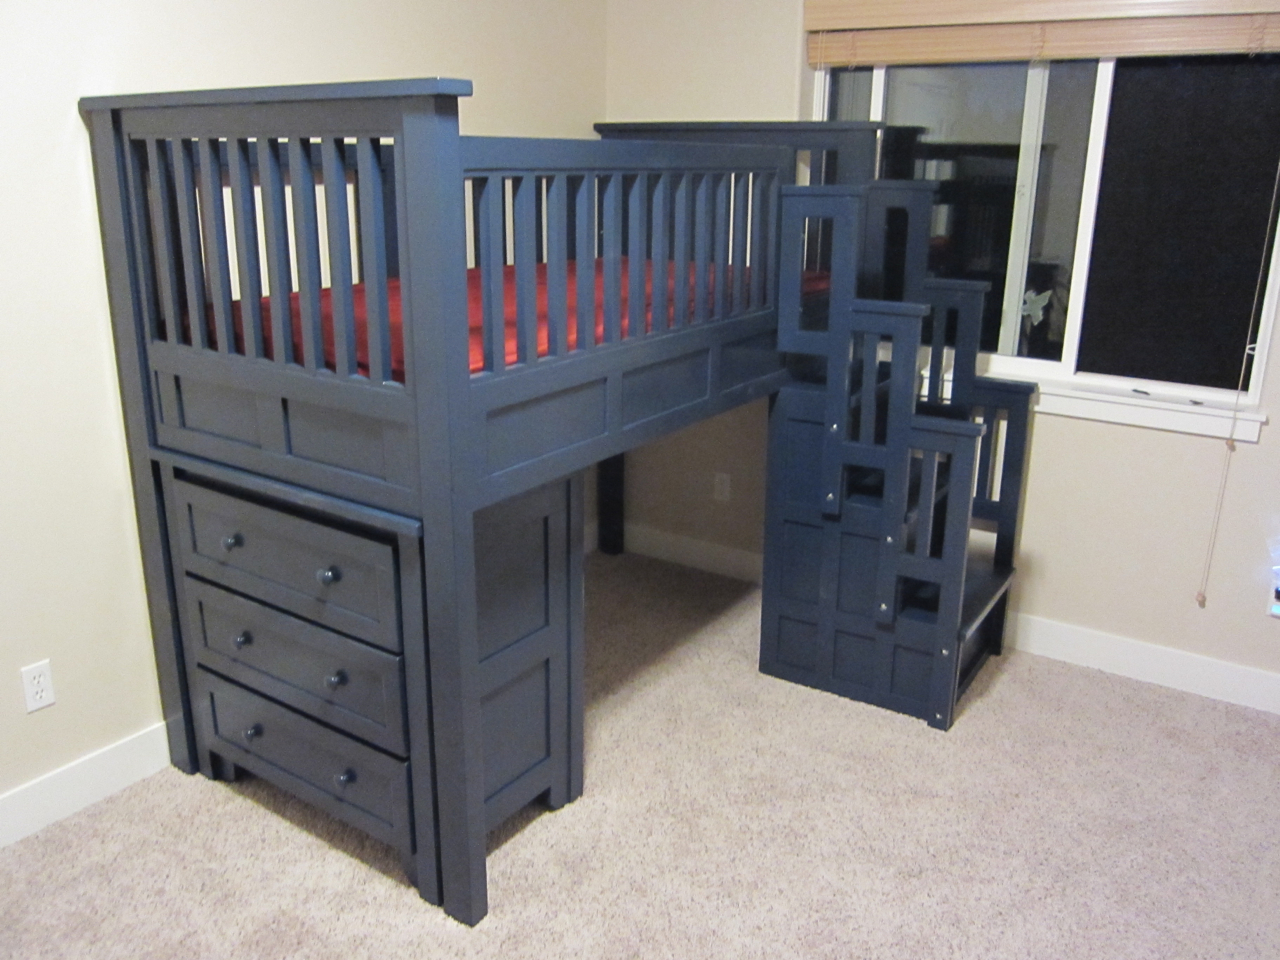 cool wooden Bunk Beds With Stairs in blue before the beige wall for teen bedroom decor ideas